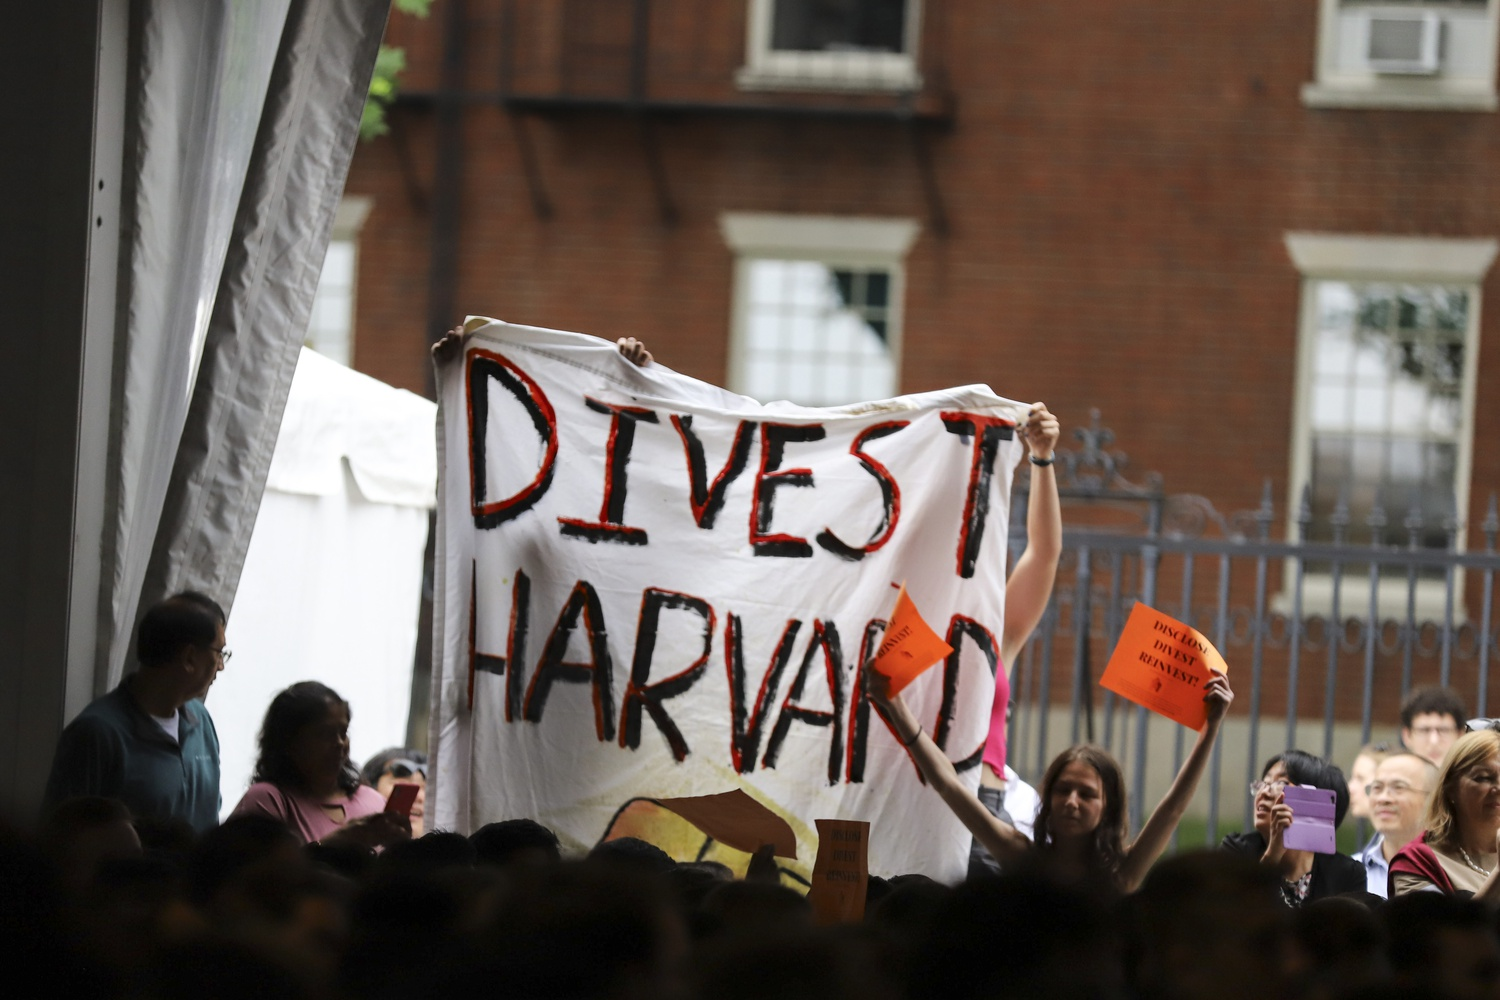 Members of Divest Harvard raised a banner calling on Harvard to divest its endowment from fossil fuel industries during University President Lawrence S. Bacow's Convocation address Monday.